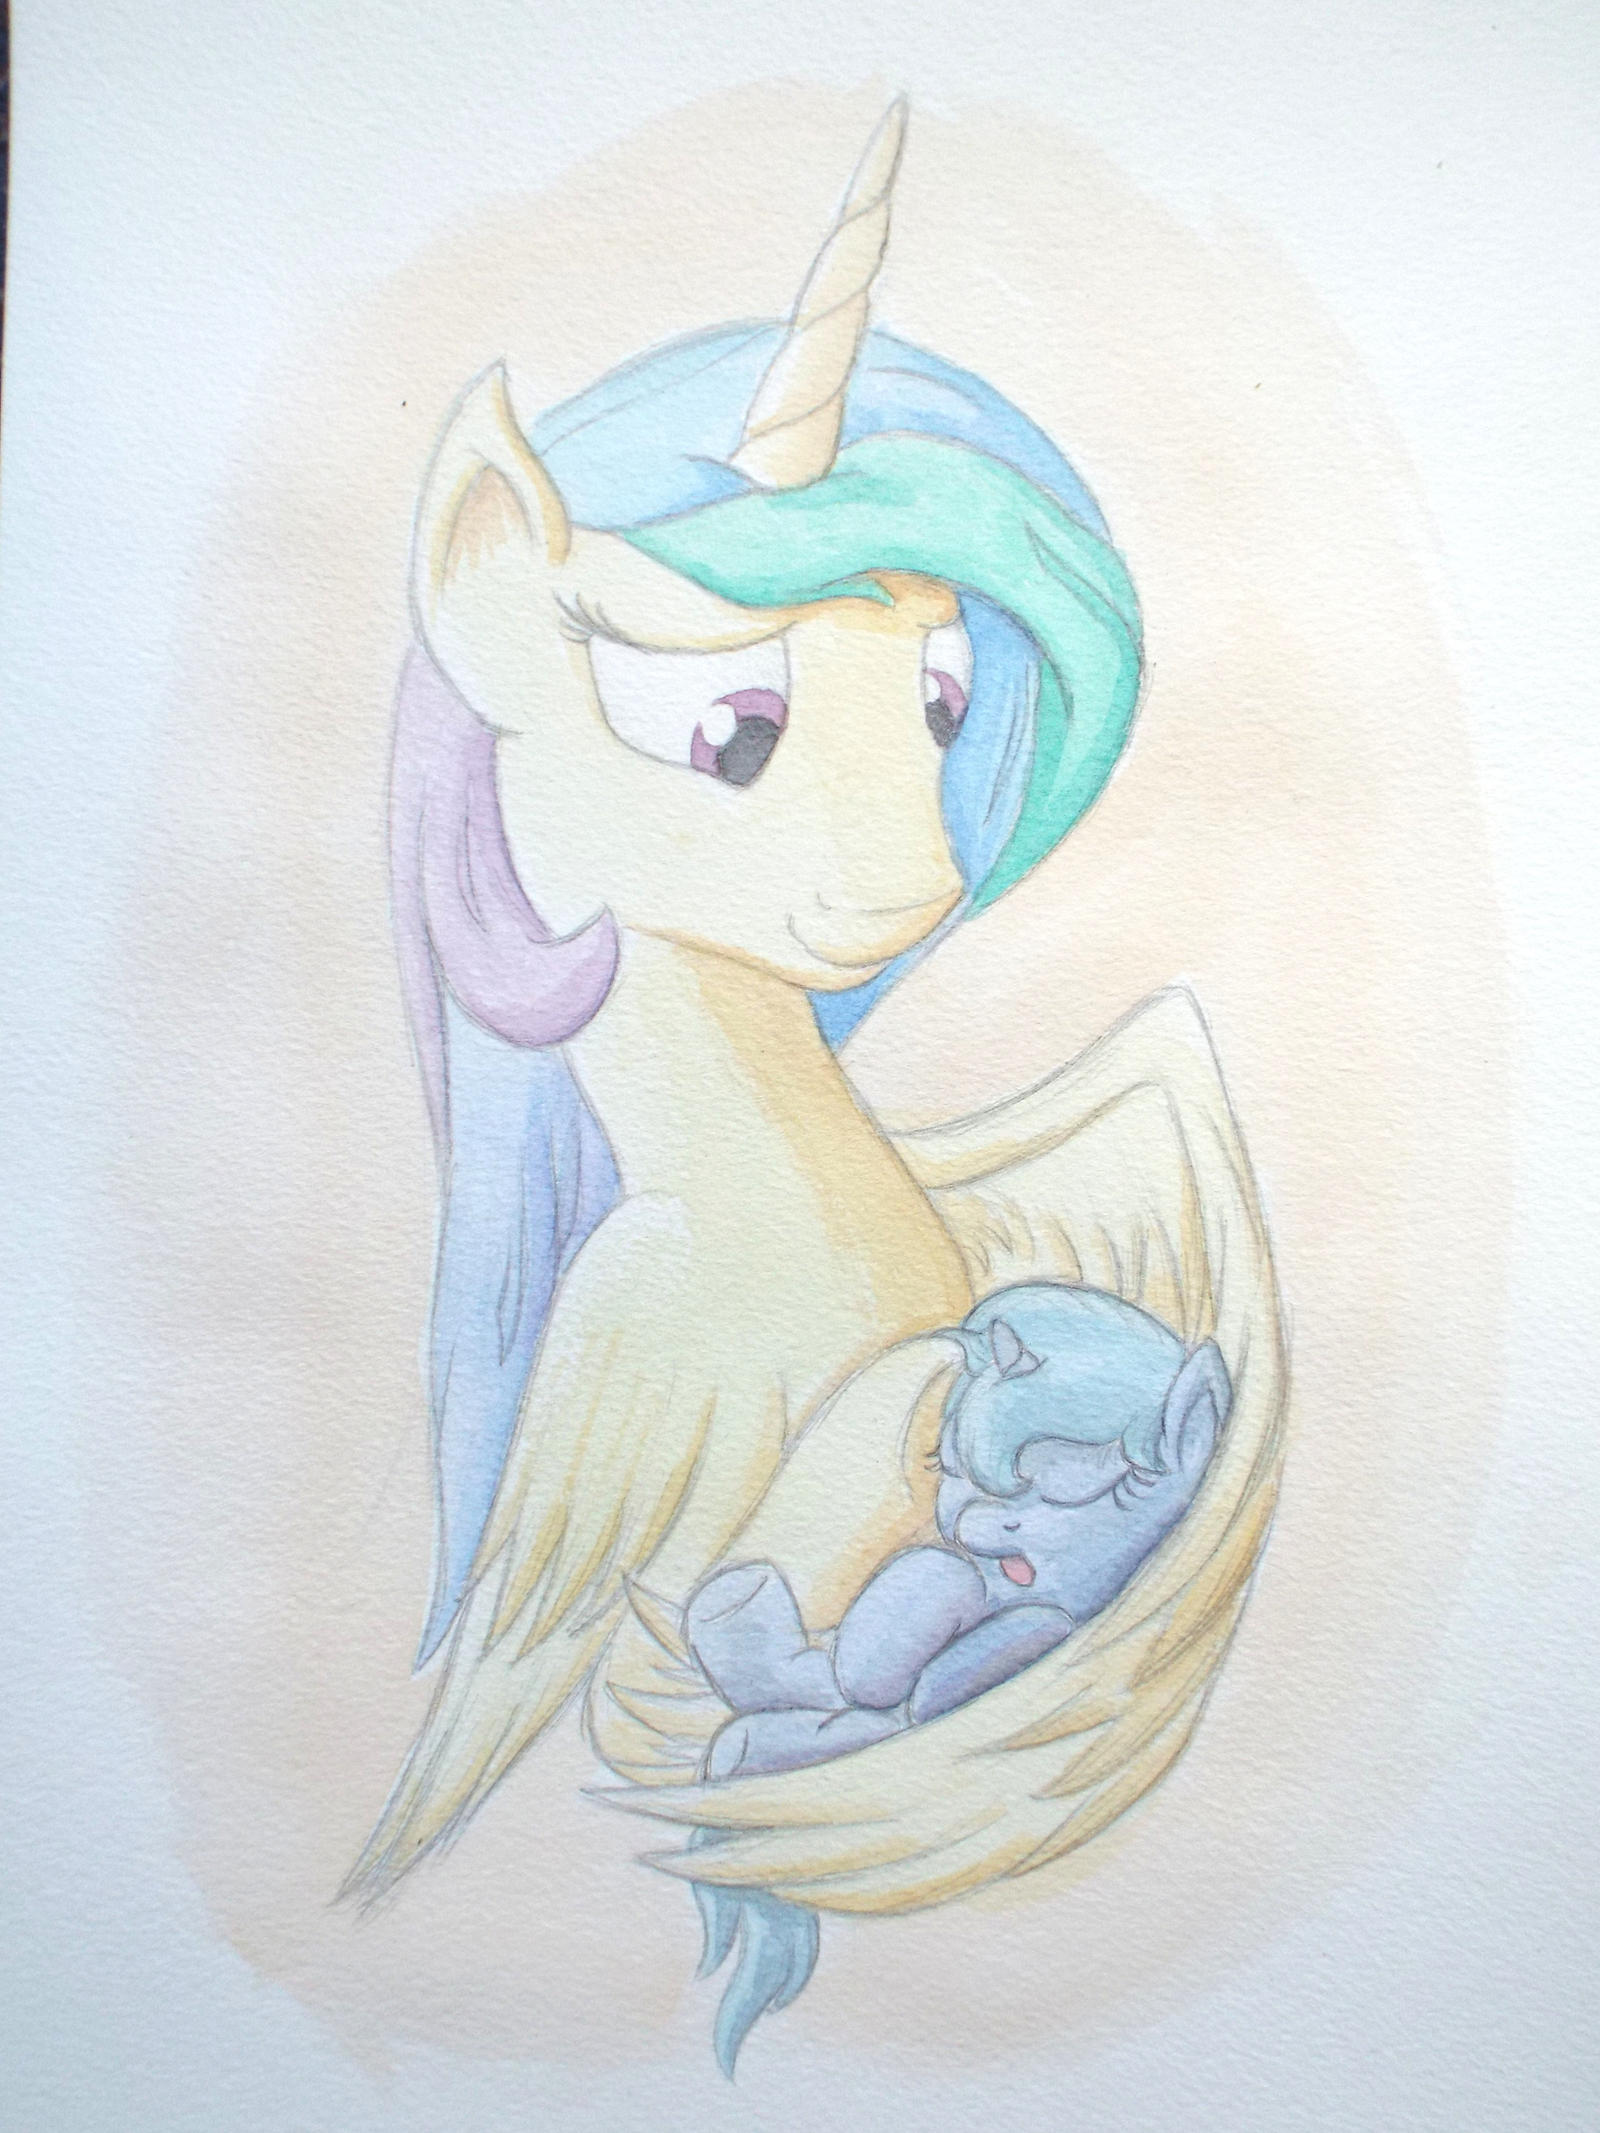 Sleepy Little One by Arvaus